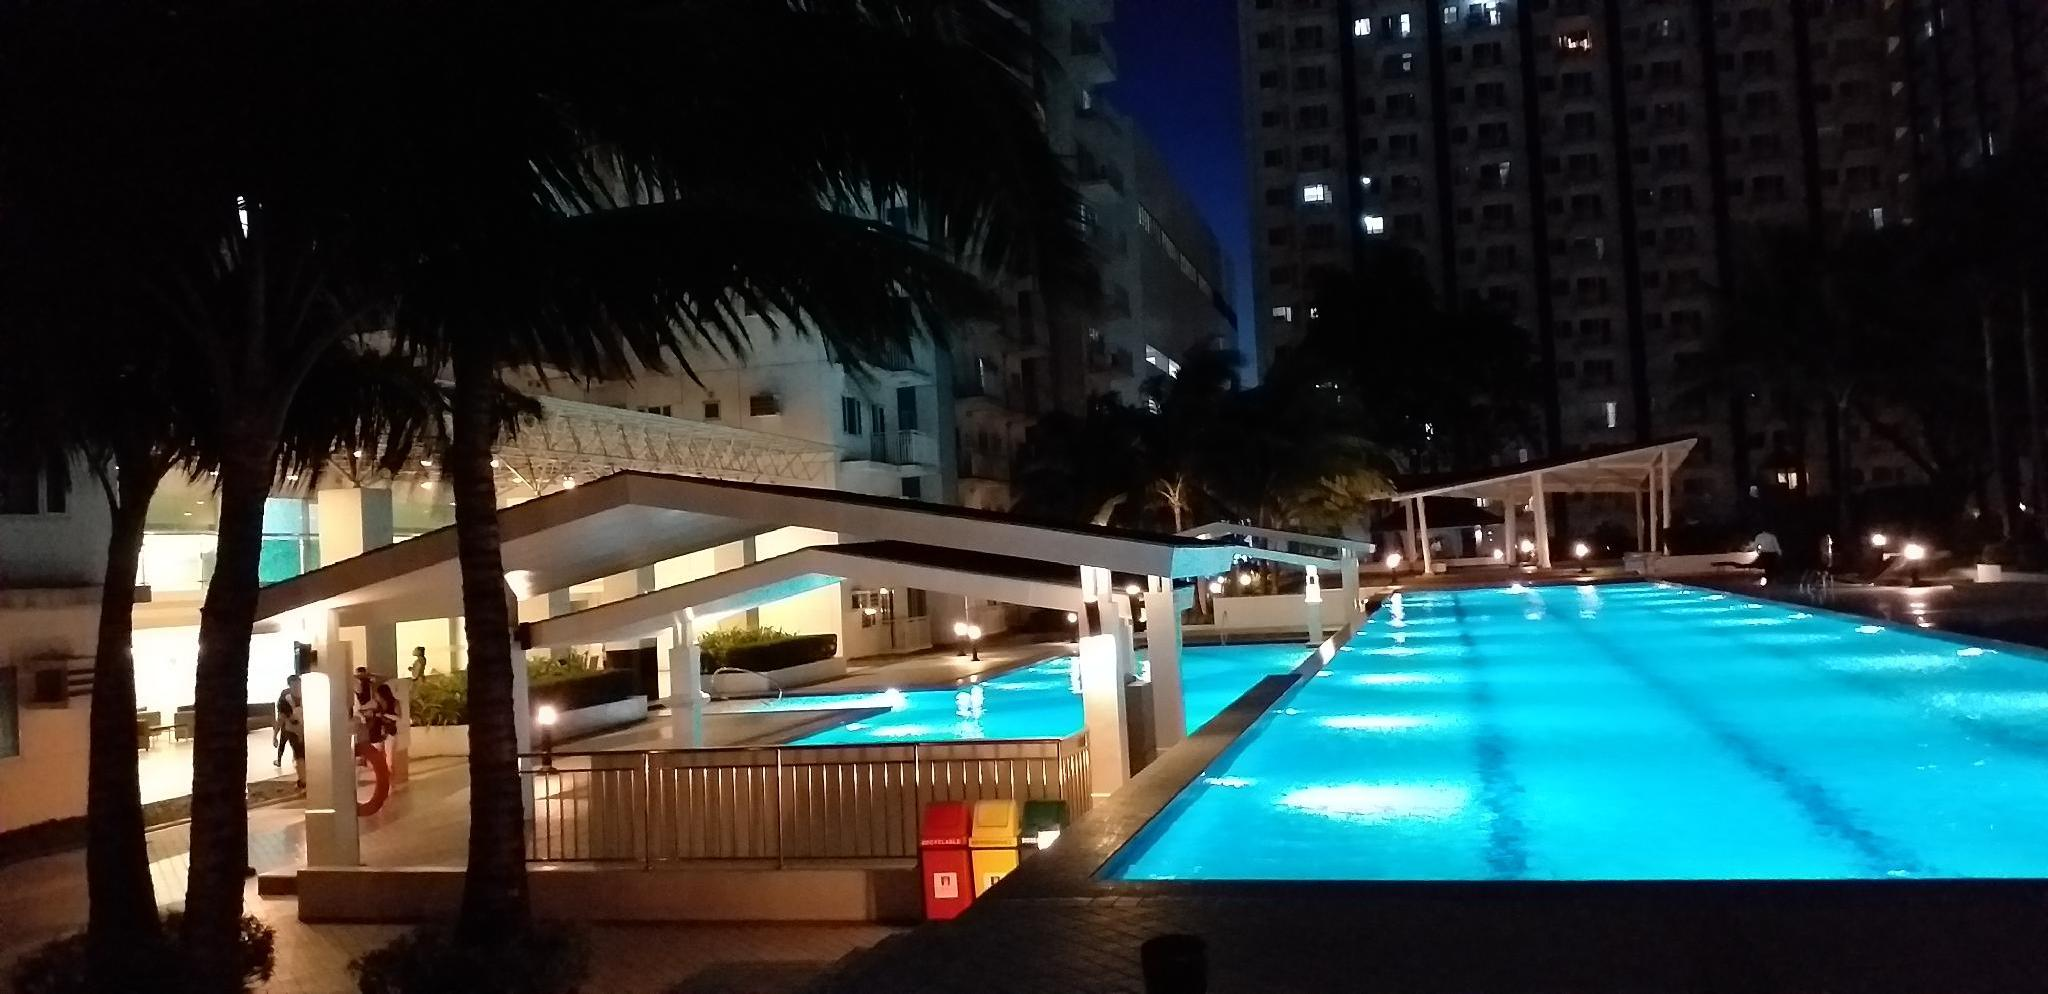 1BR SUITE INDULGENCE AT SM NORTH GRASS RESIDENCES